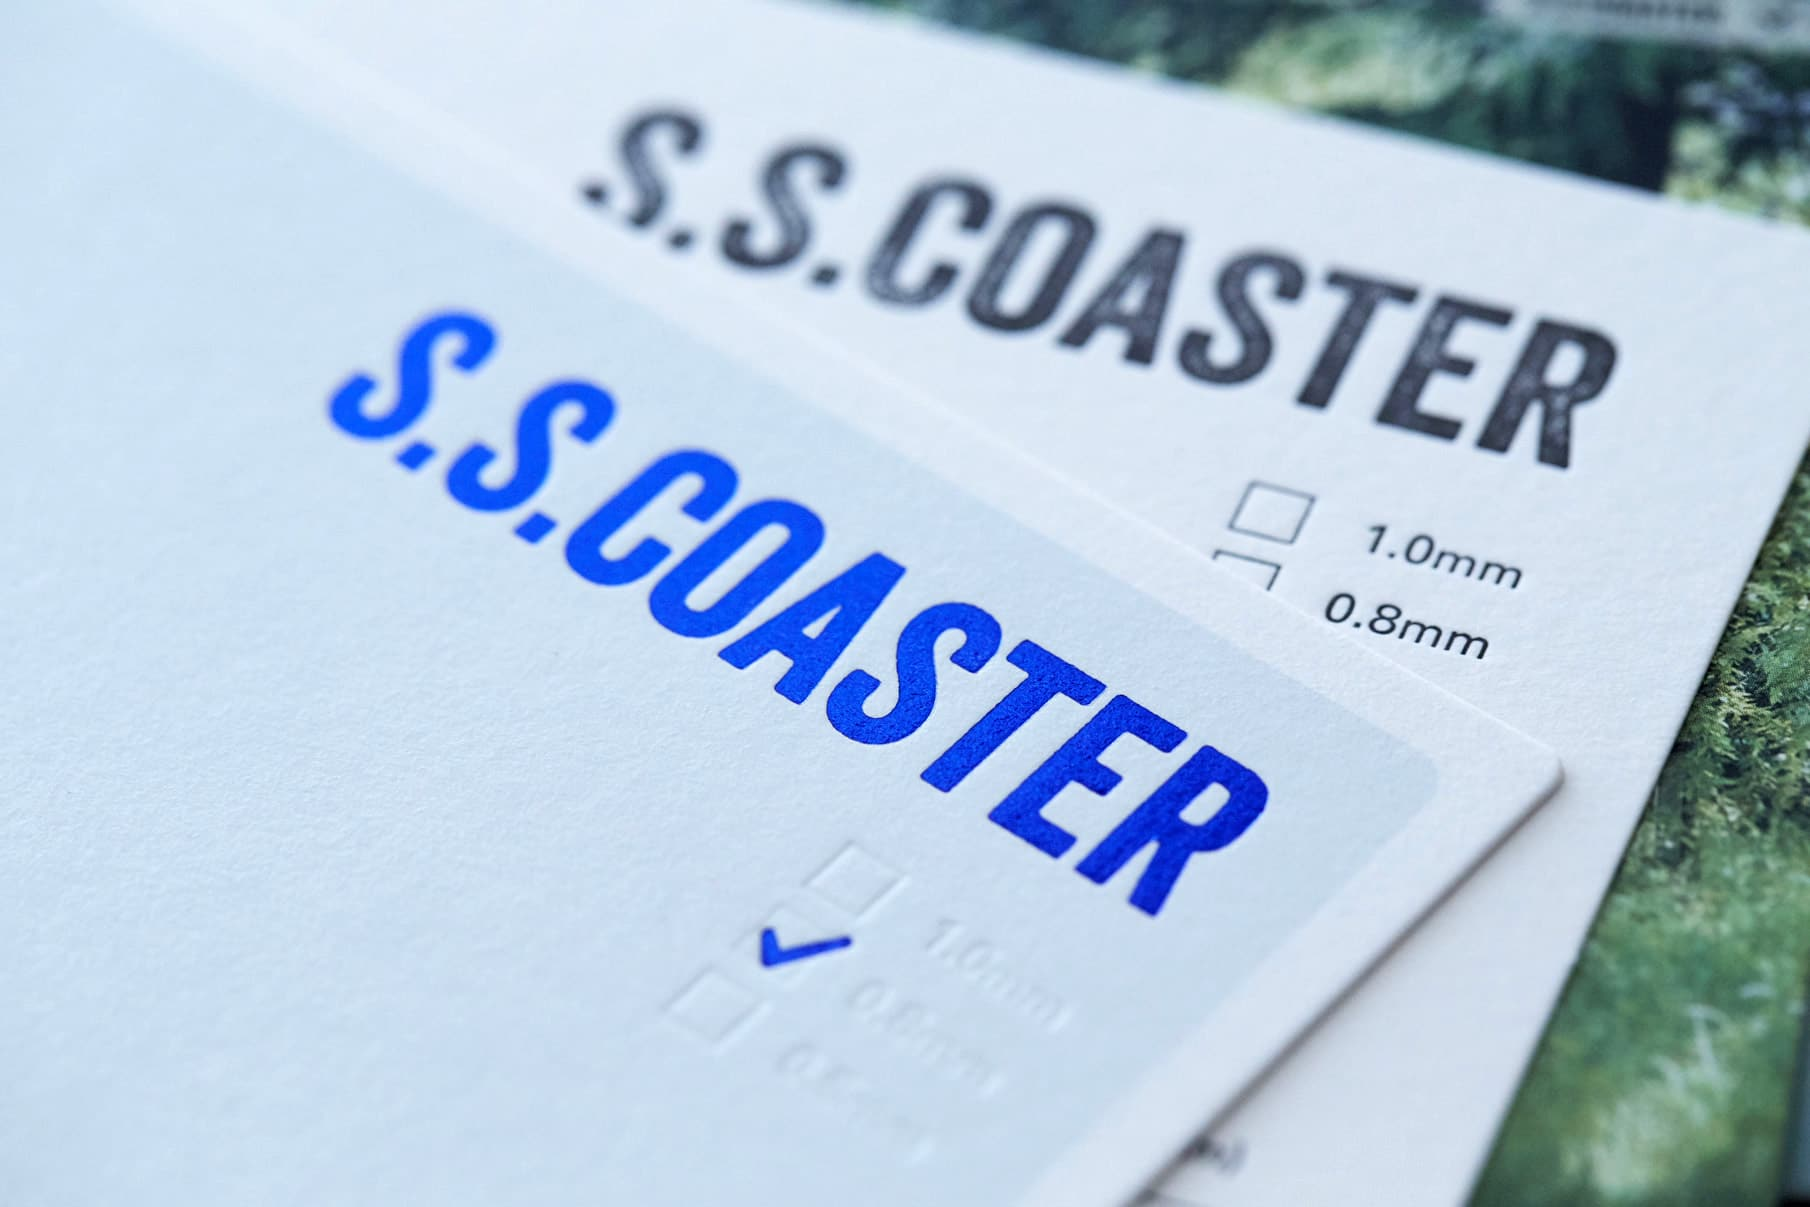 S.S.Coaster - Promotion Book 3